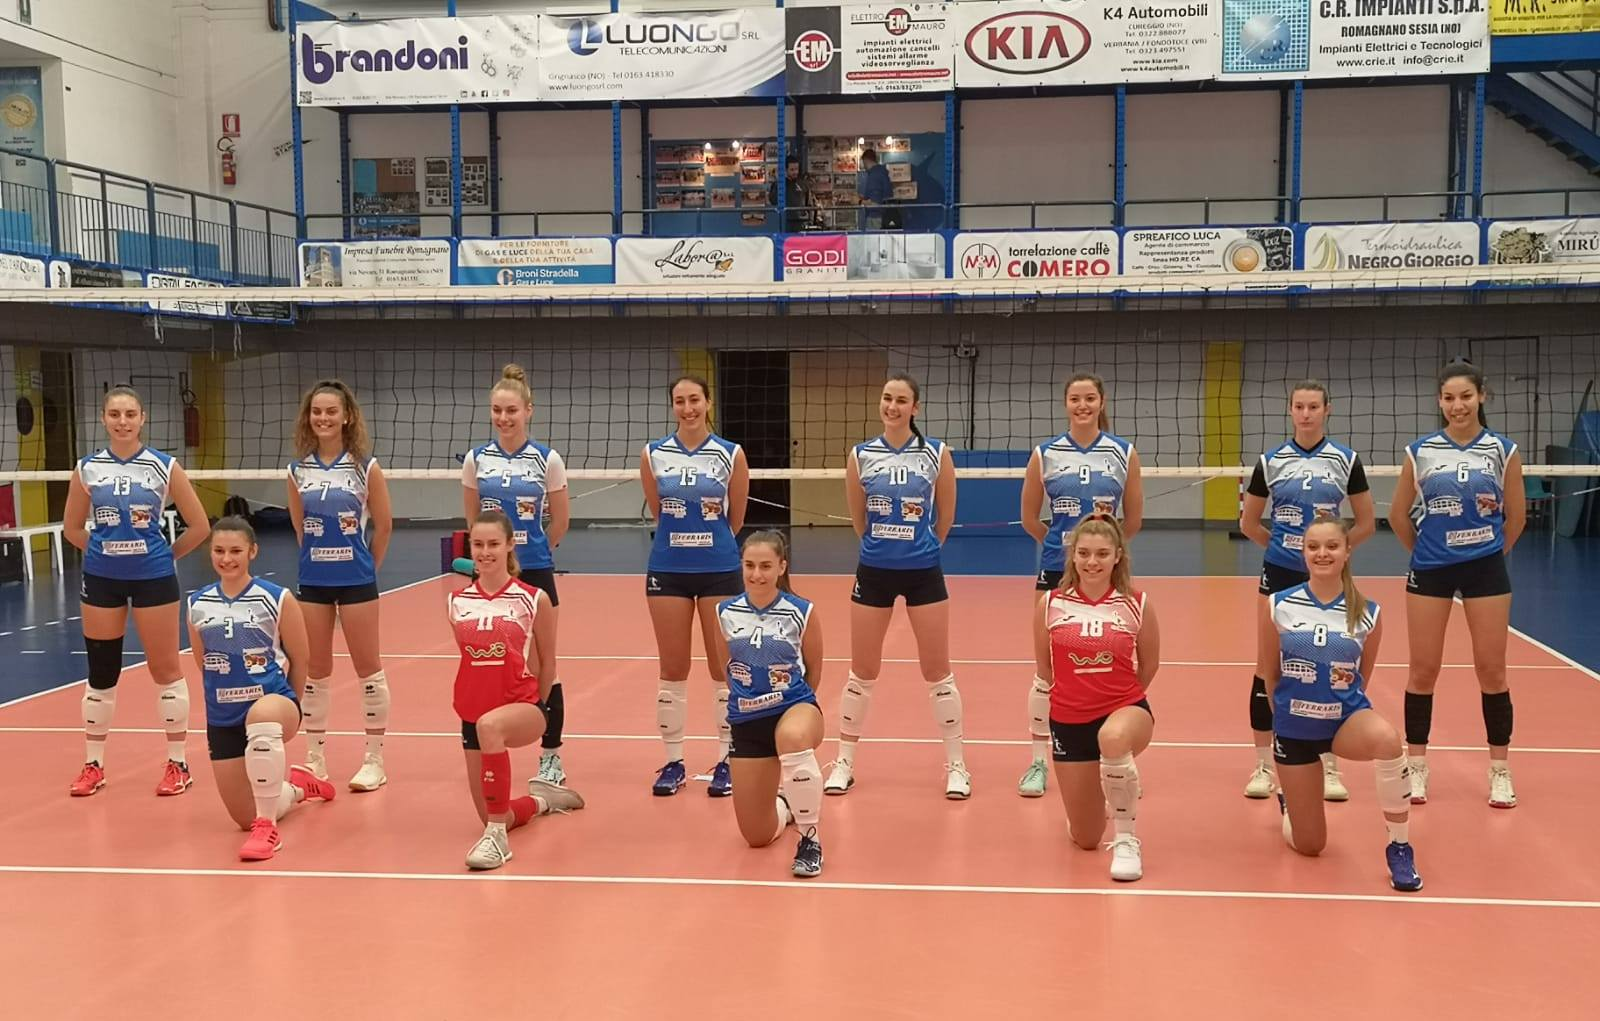 G.S. PAVIC - Canavese Volley IVREA 3 - 0